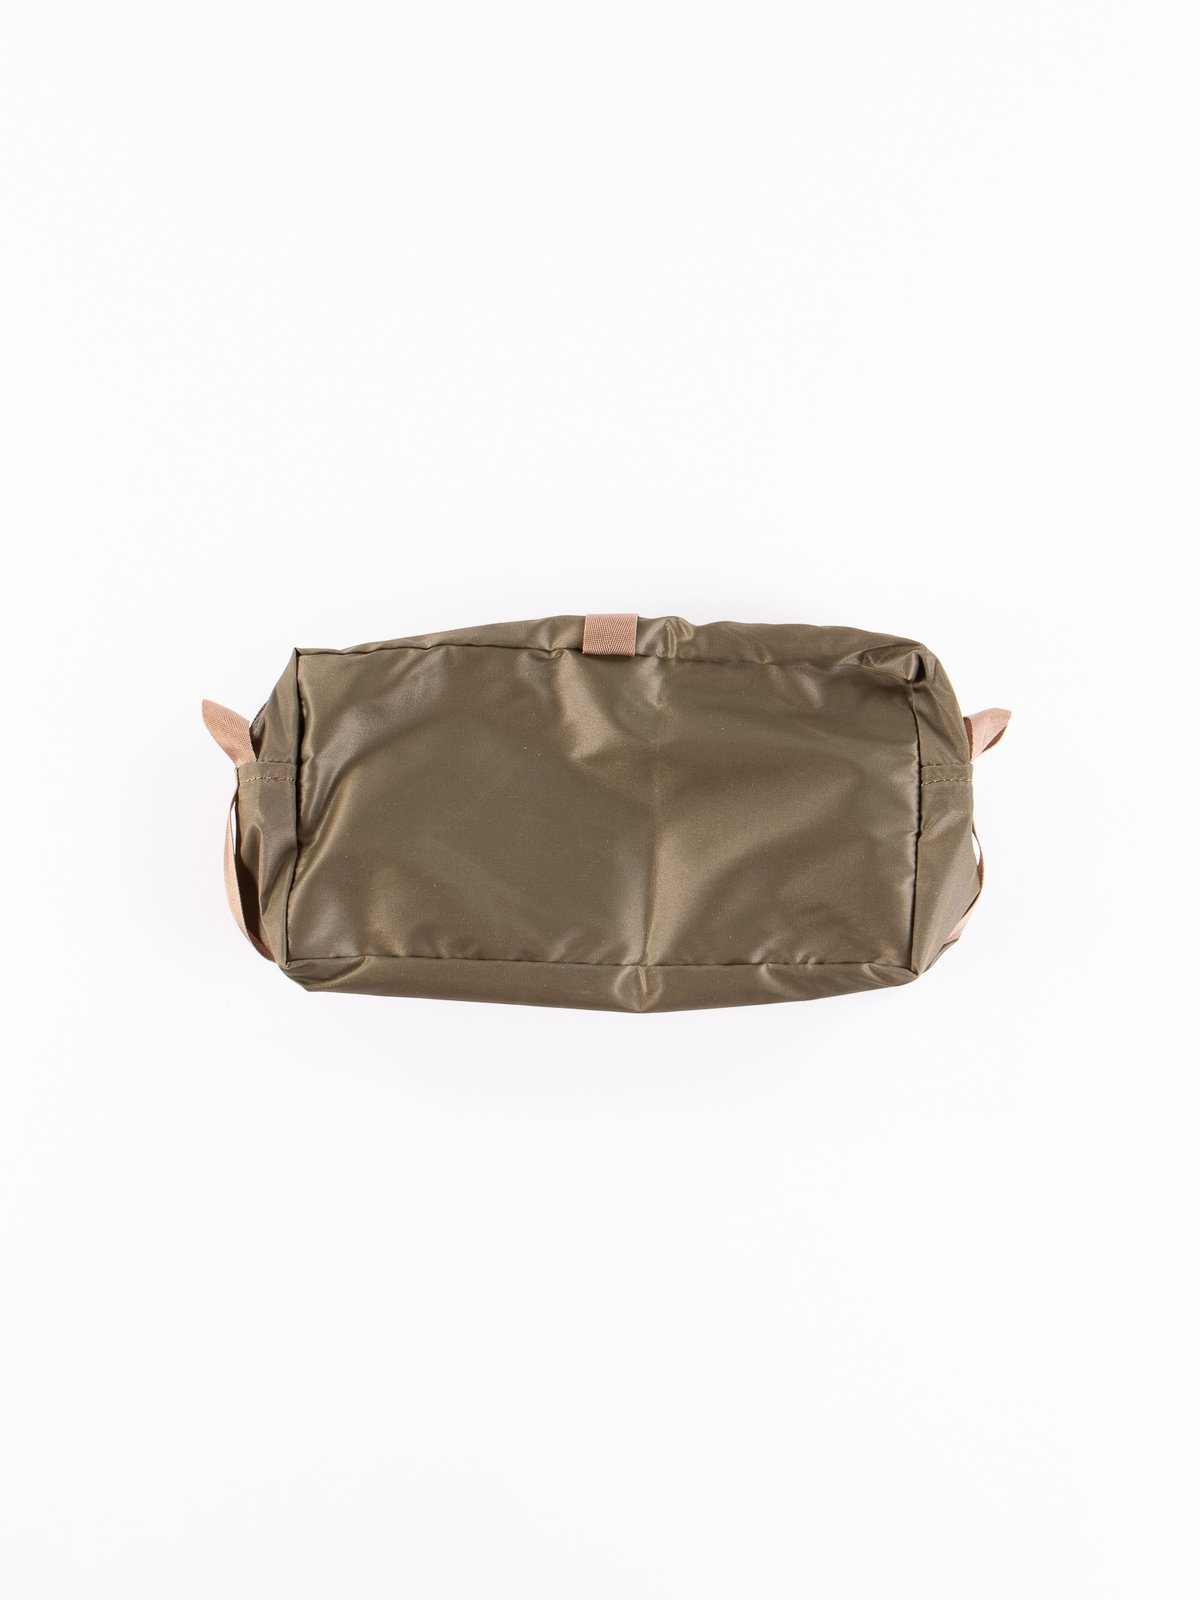 Olive Drab Snack Pack 09809 Pouch Medium - Image 3